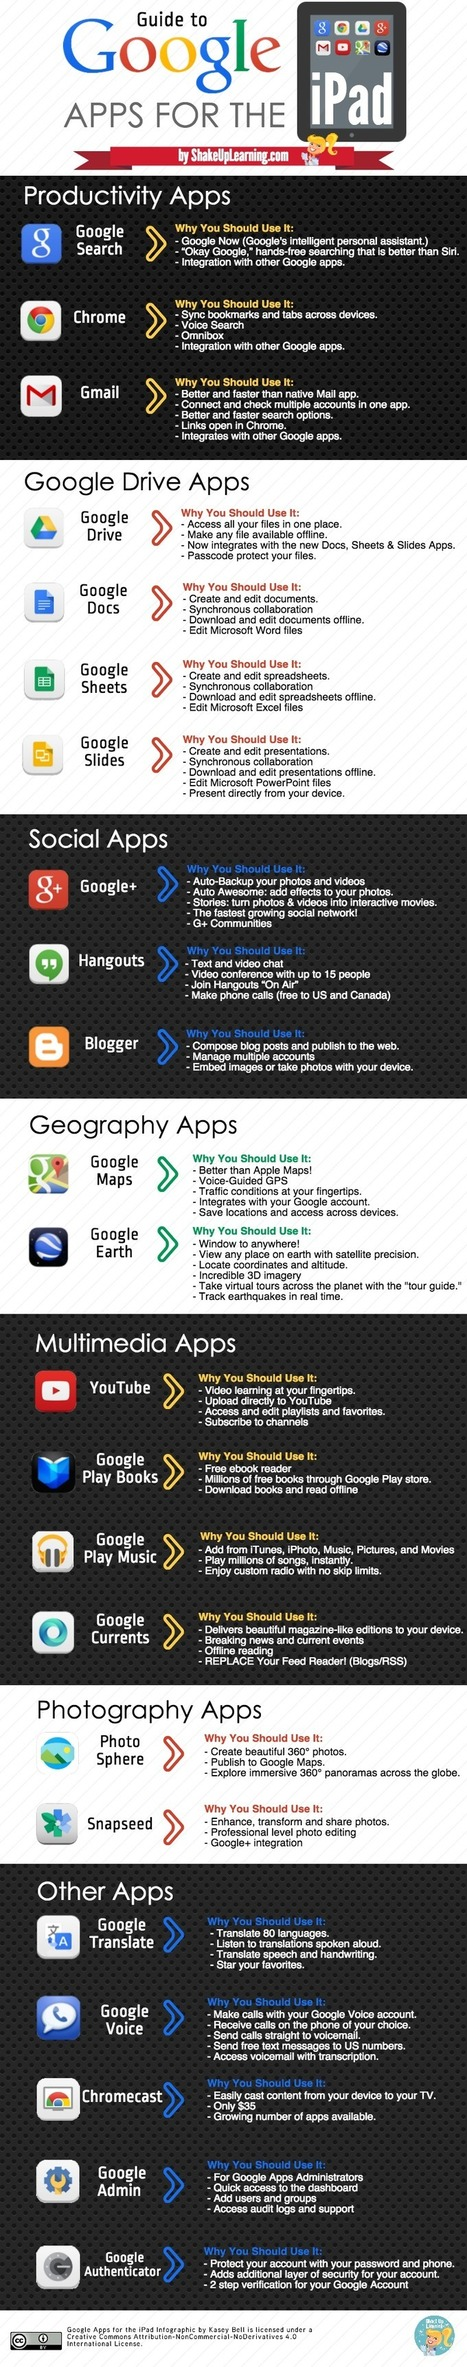 Guide to Google Apps for the iPad - Infographic | Contemporary learning | Scoop.it